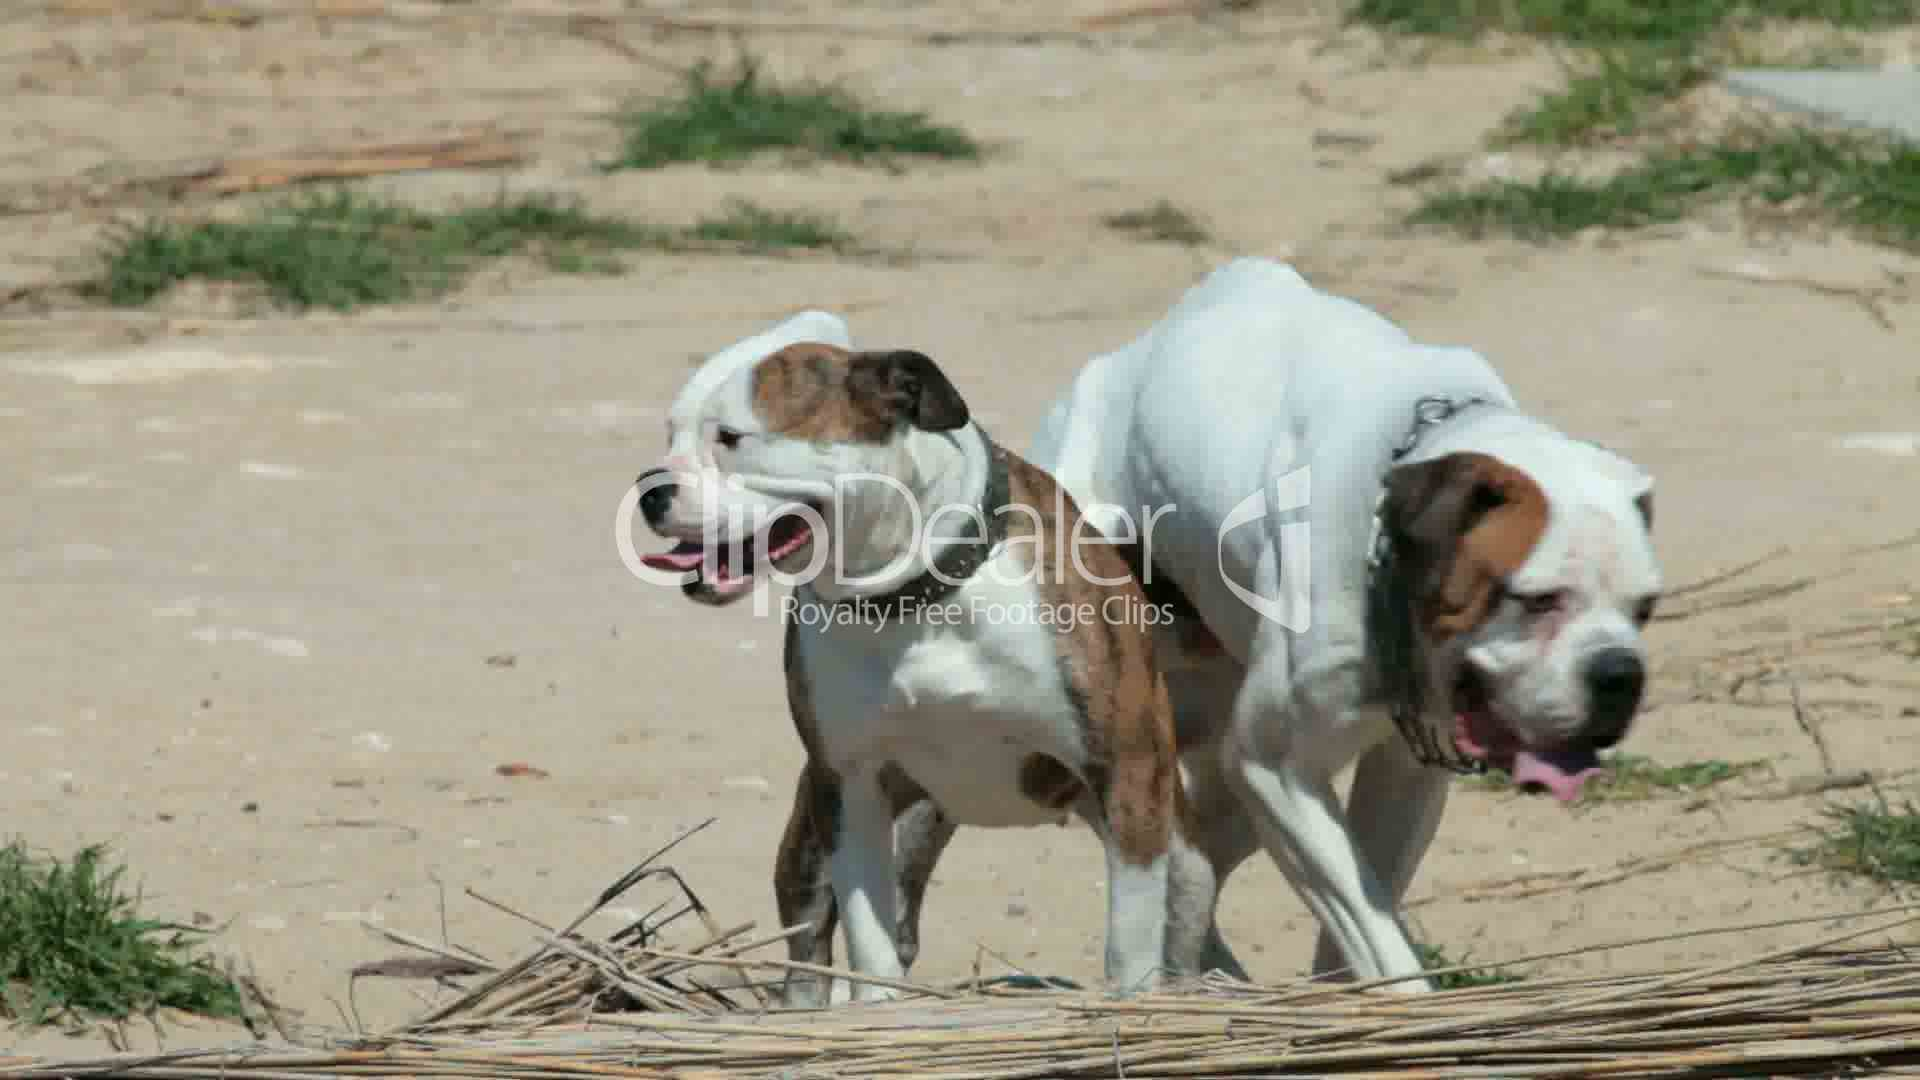 dogs mating: Royalty-free video and stock footage